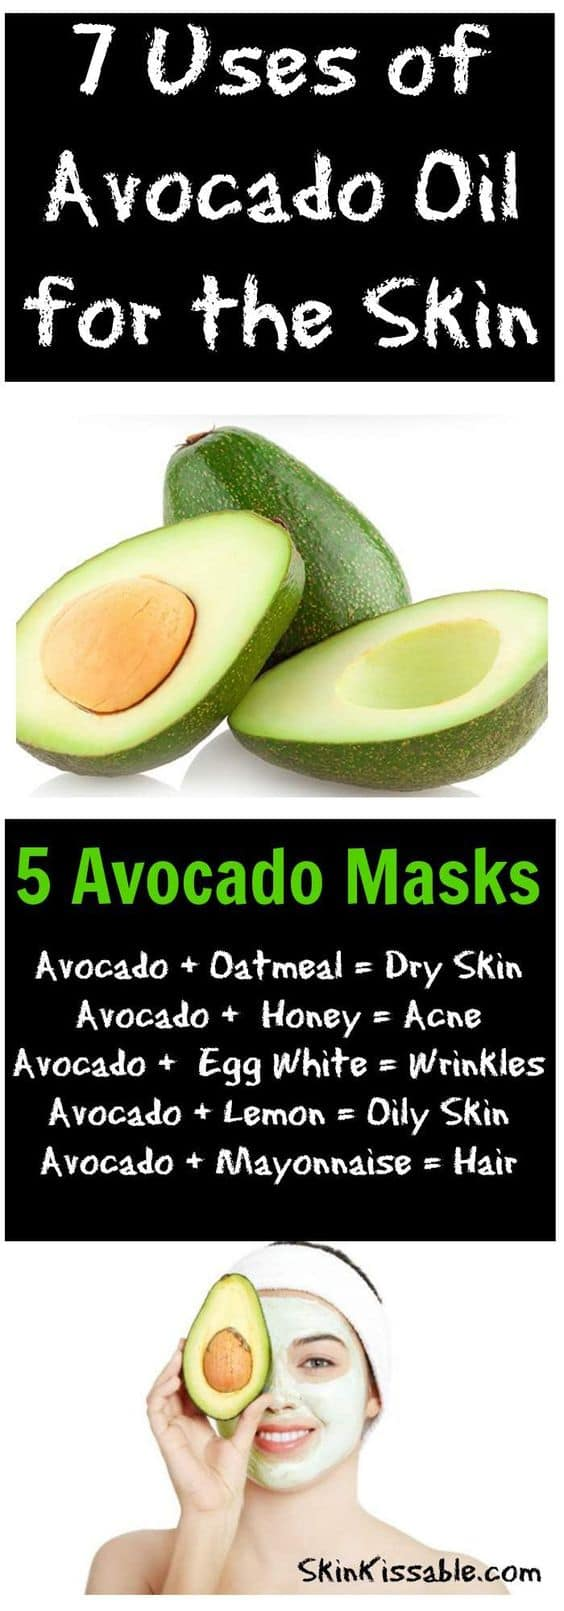 We've been told that fruits and vegetables are good for us and this DIY face mask for wrinkles is a great example why. Its main ingredients? Yummy avocado and the crunchy carrot!